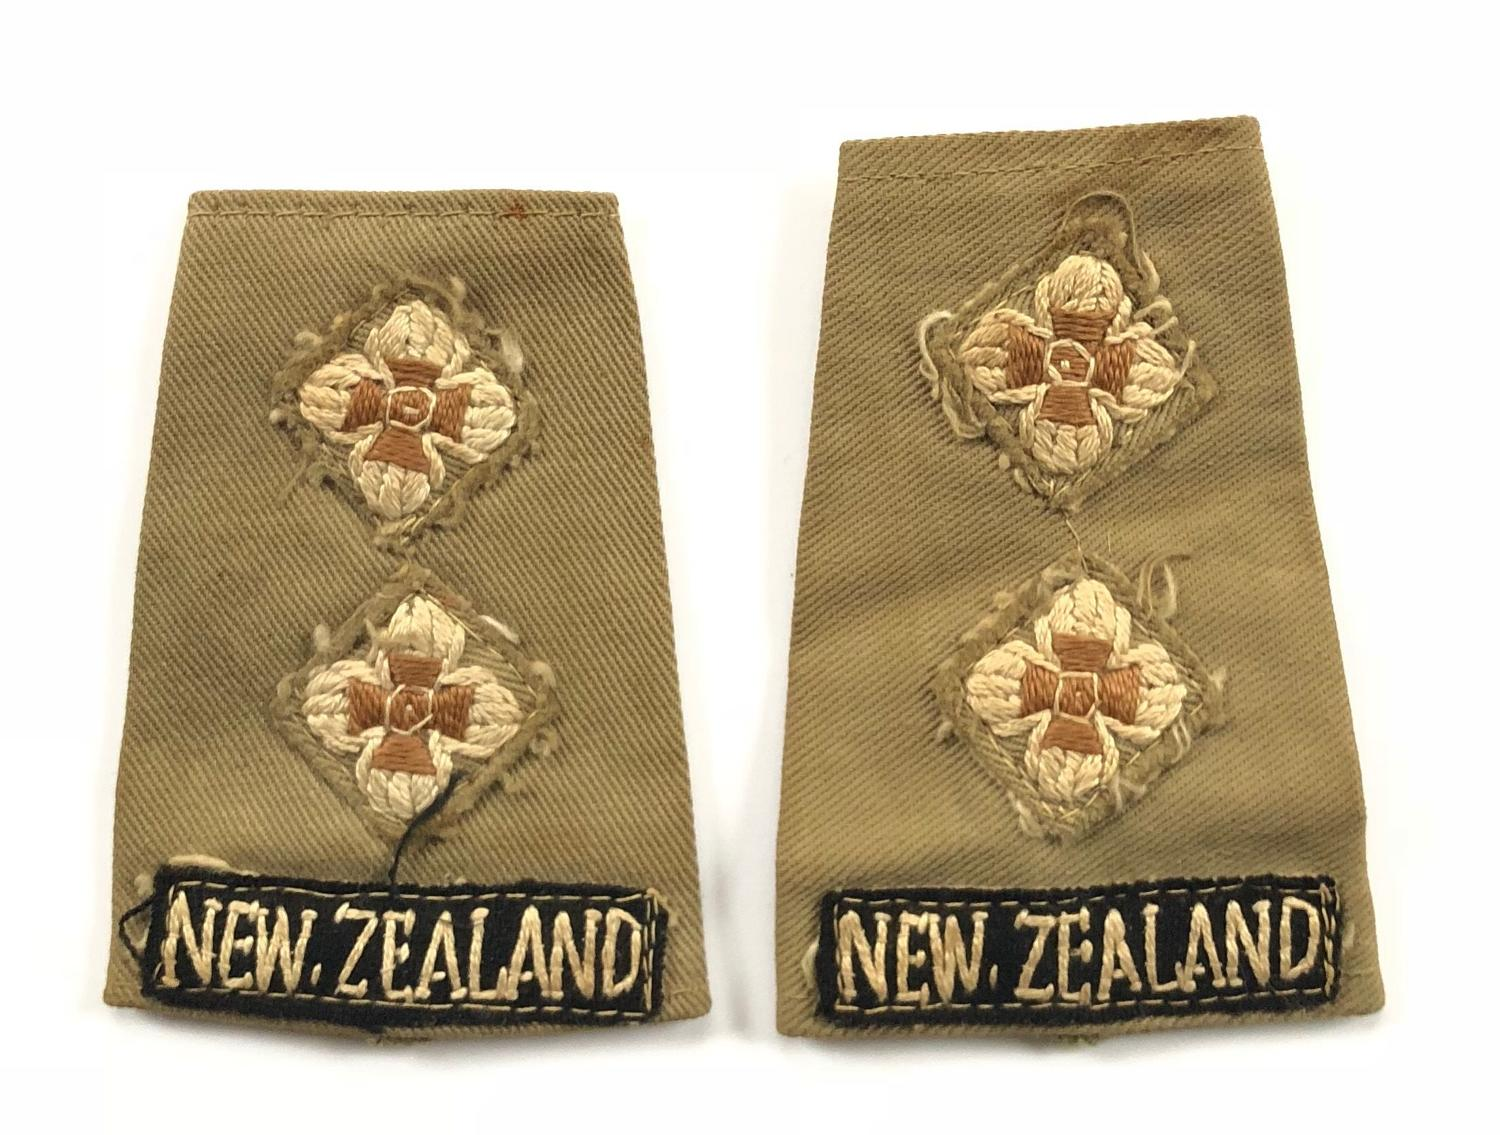 WW2 New Zealand Officer's KD Slip on Rank Slides.